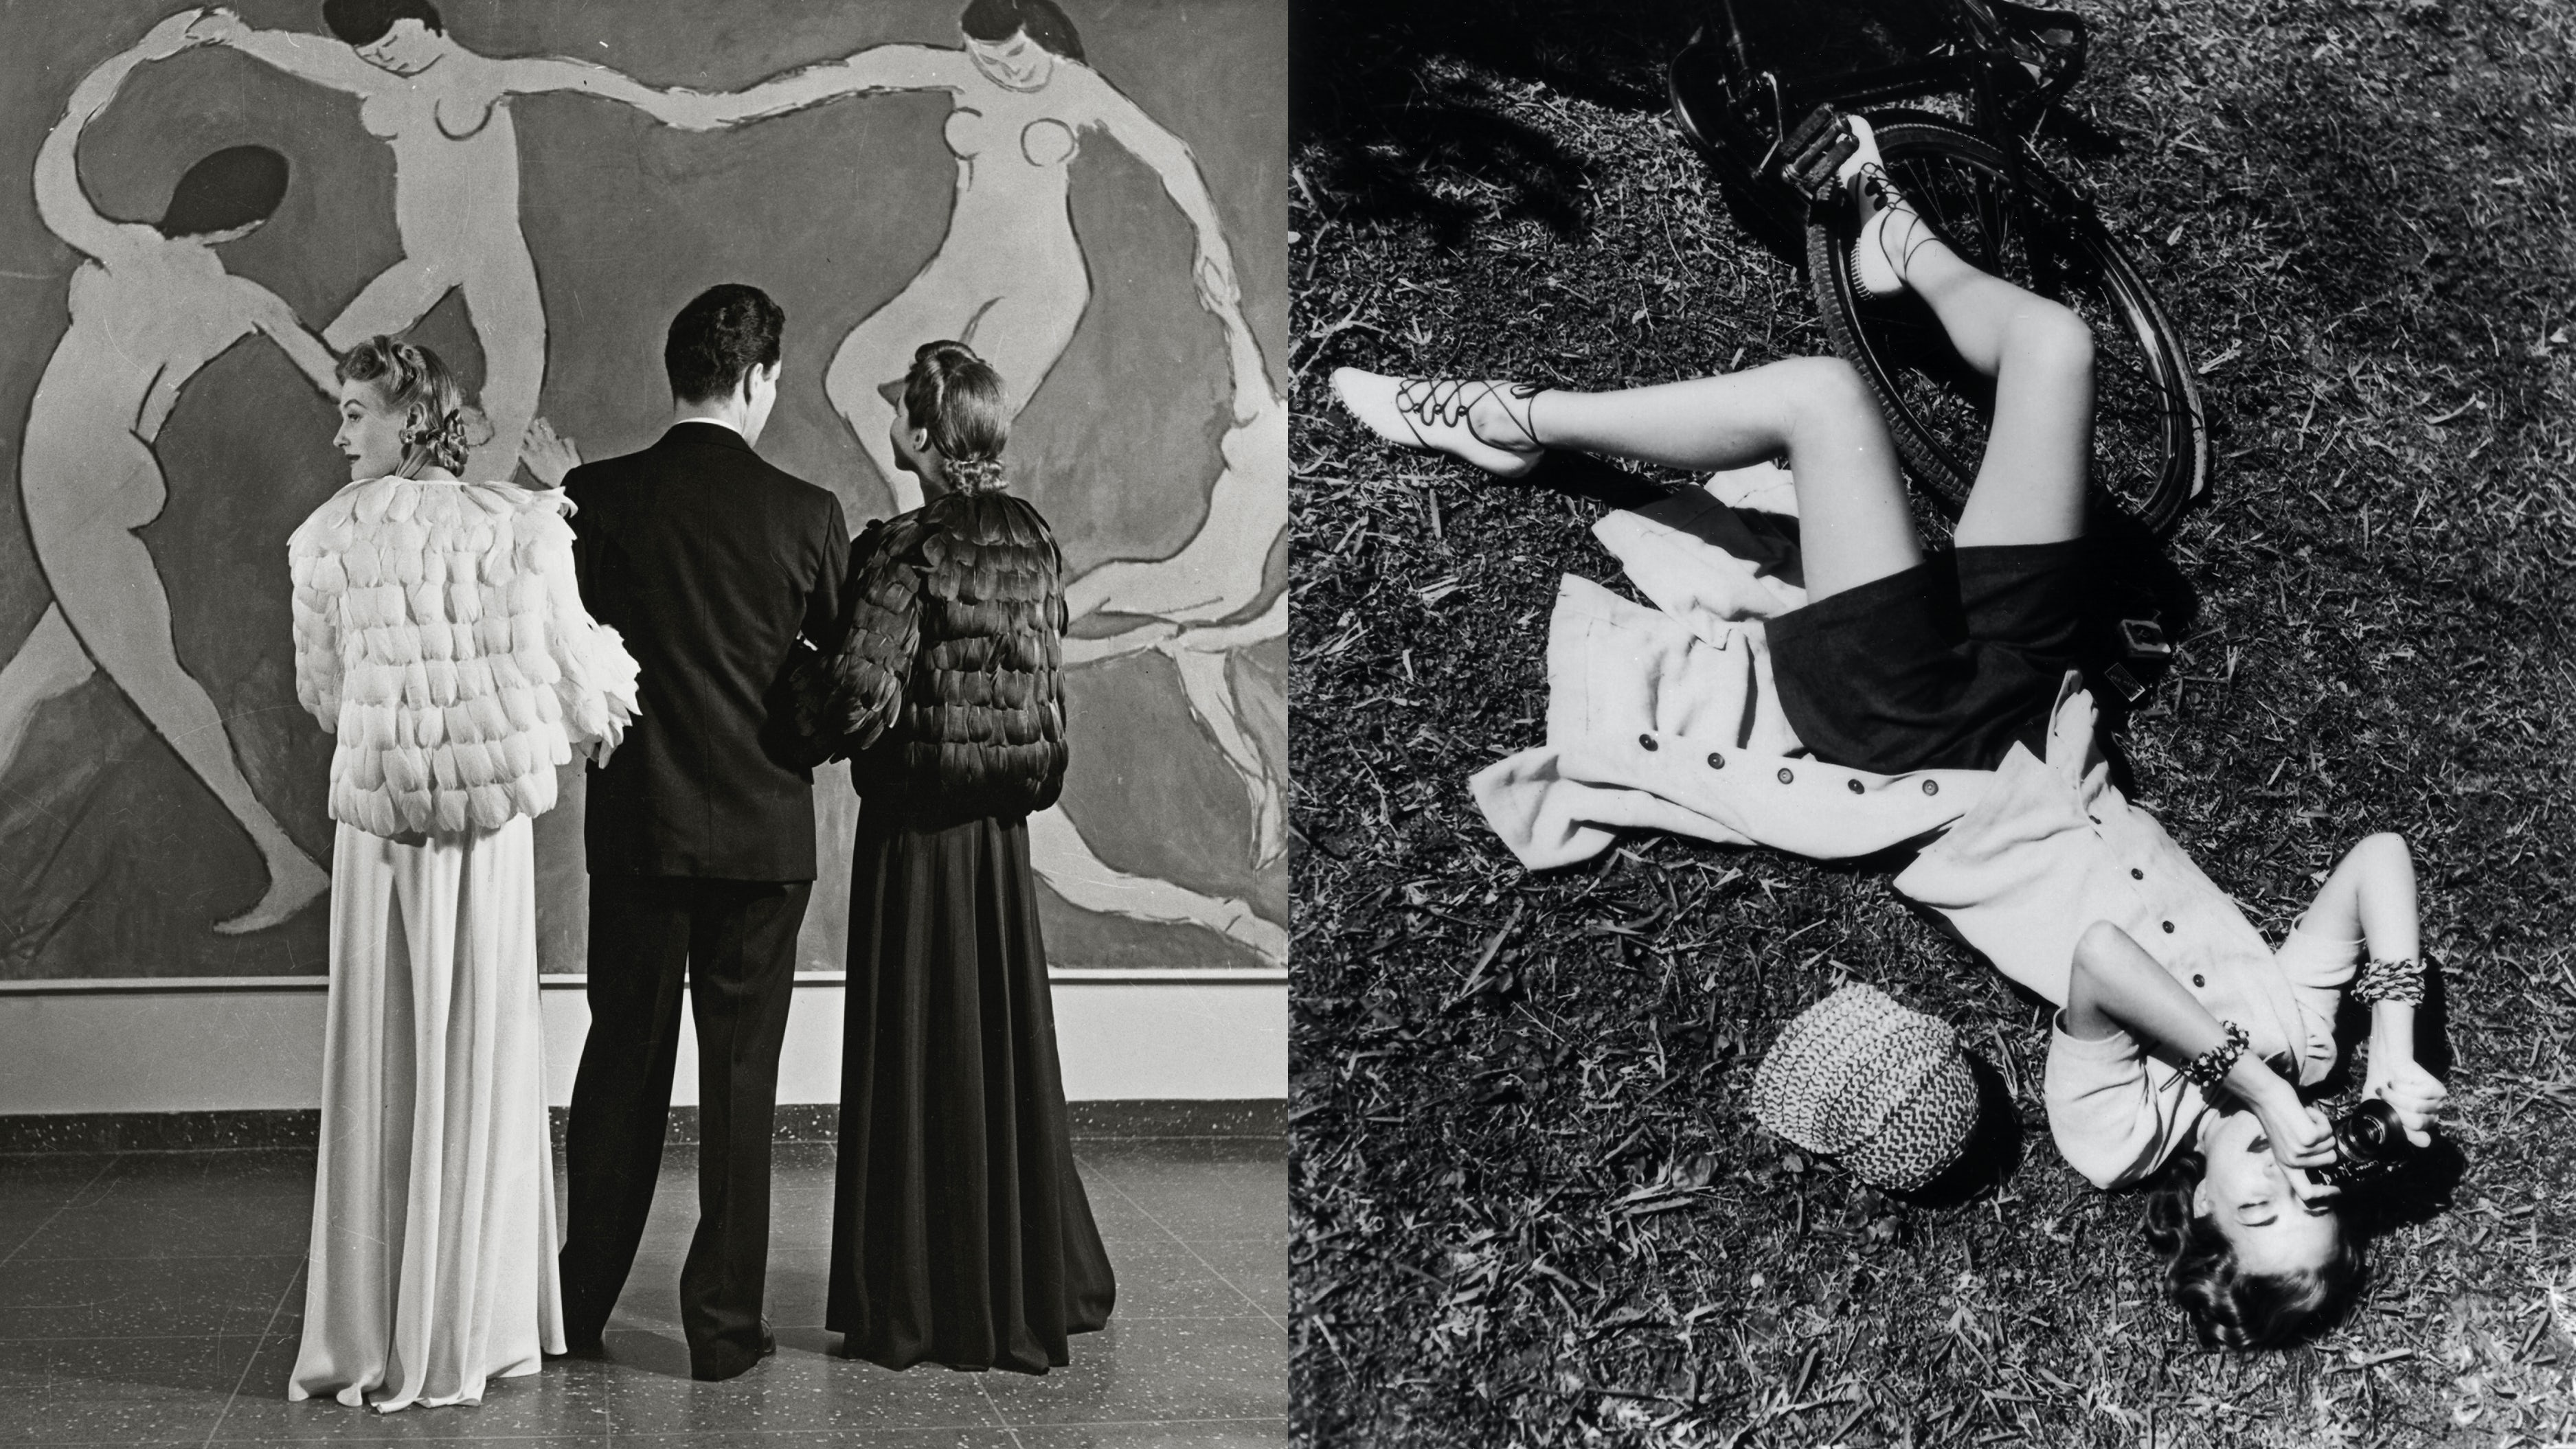 Left: Looking at Matisse, Museum of Modern Art, 1939. Right: Liz Gibbons as Photographer, 1938. | Photographs by Louise Dahl-Wolfe | Source: Courtesy of Collection Staley Wise Galley. ©1989 Center for Creative Photography, Arizona Board of Regents.